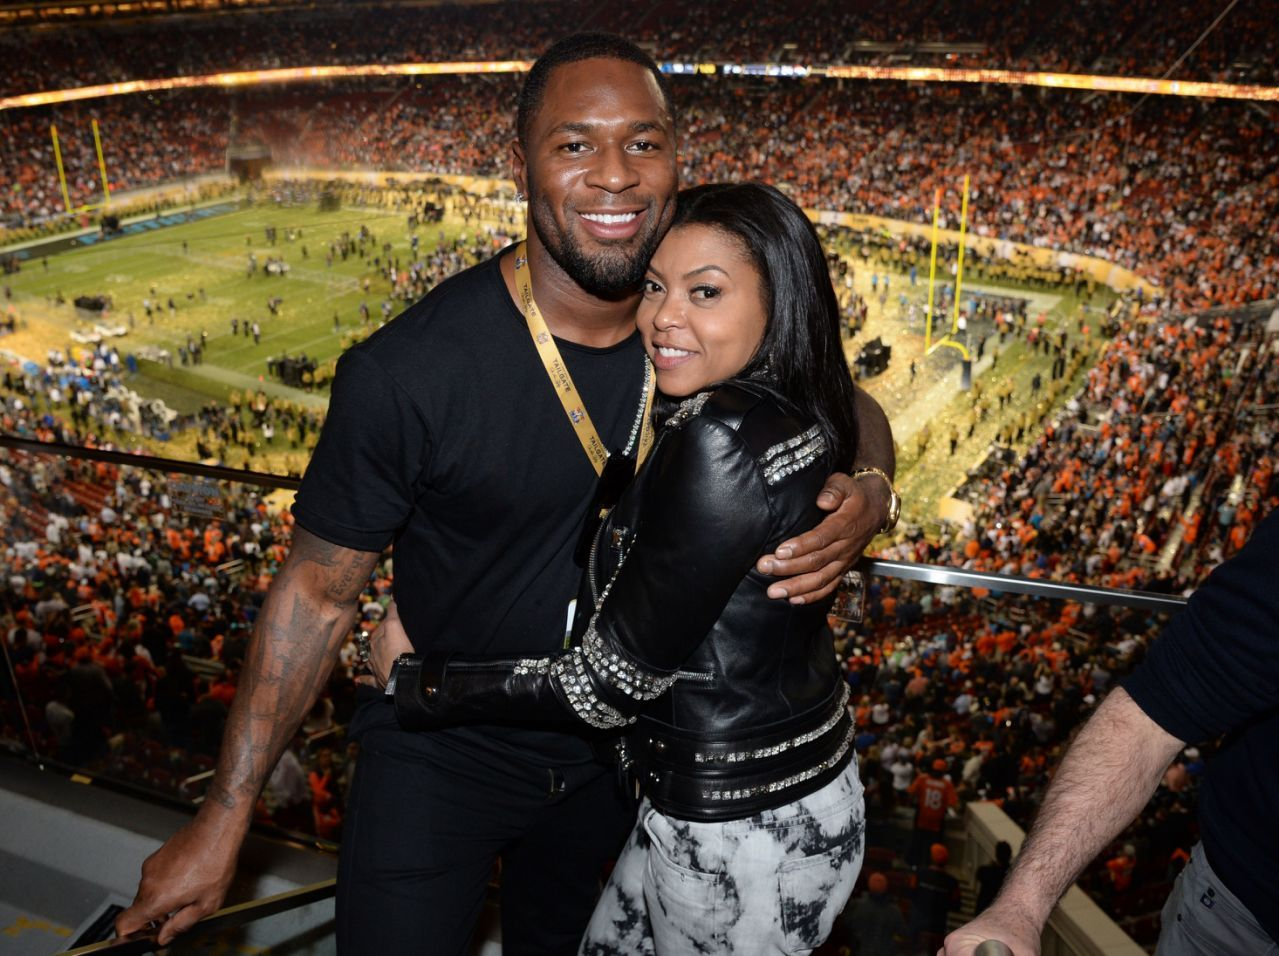 'Officially off the market' Taraji P. Henson is engaged